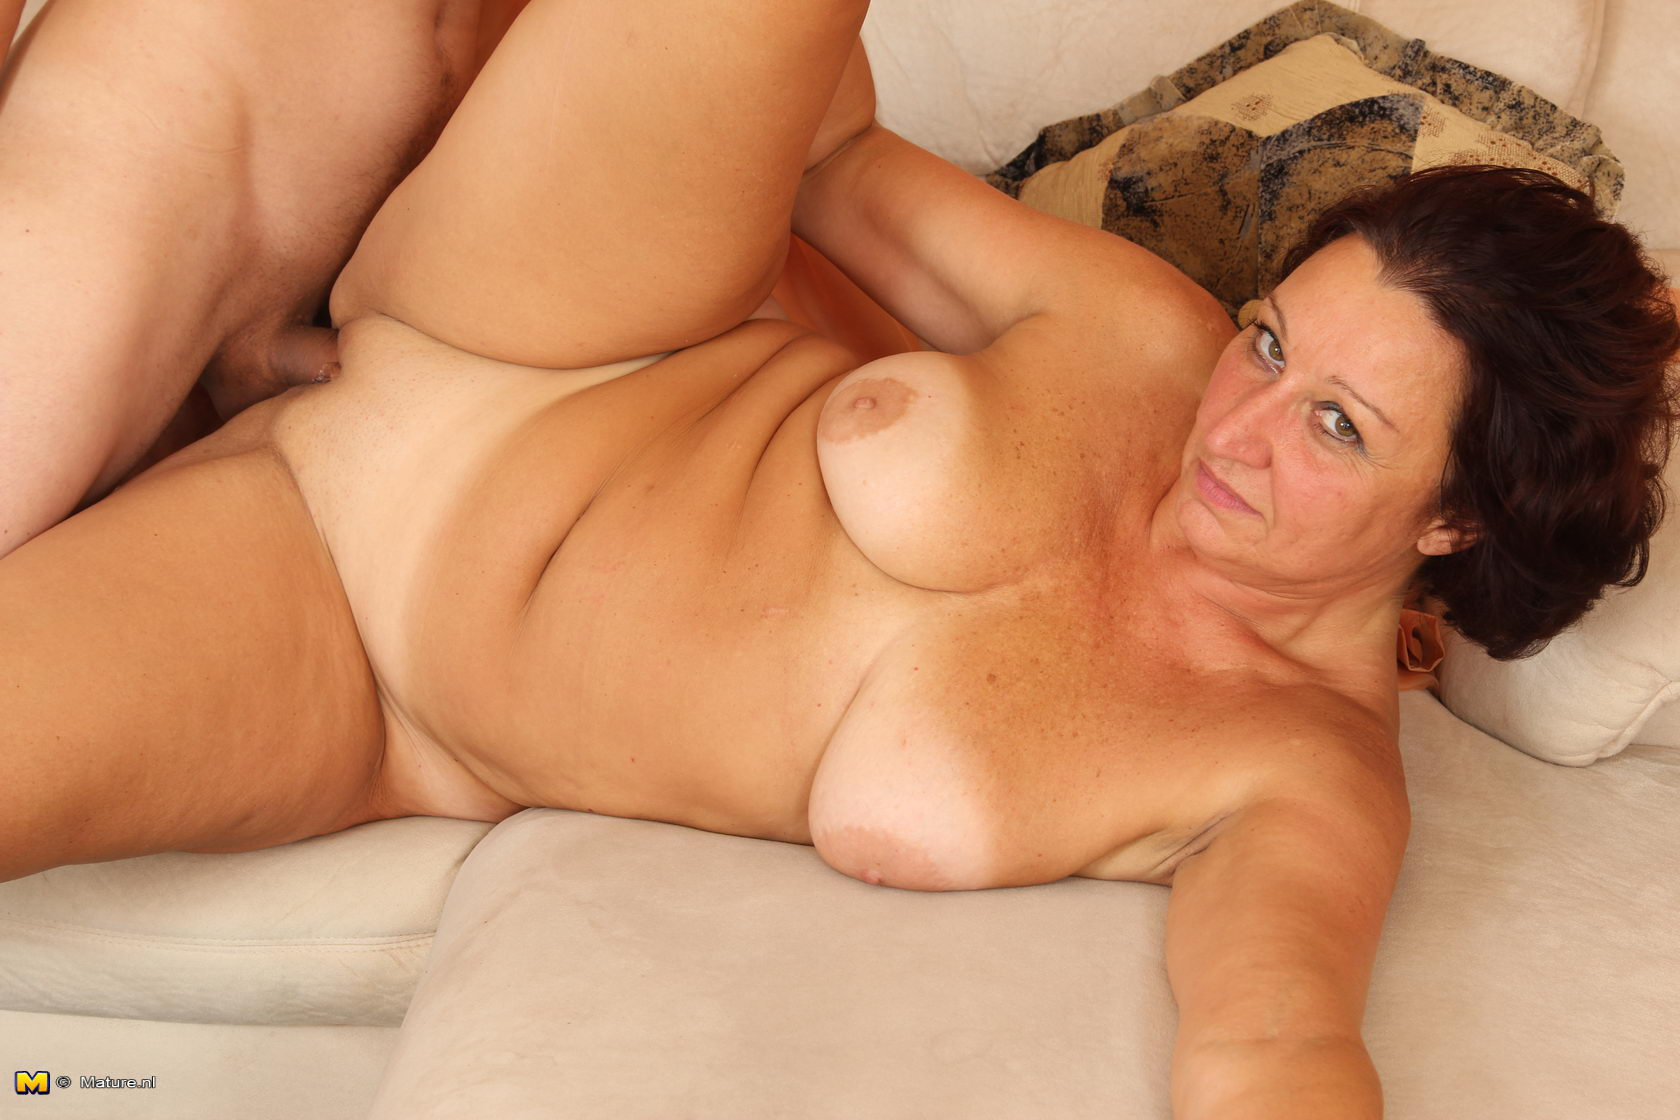 consider myself easy-going Old And Milf Lesbian Sex Pics year old sexy